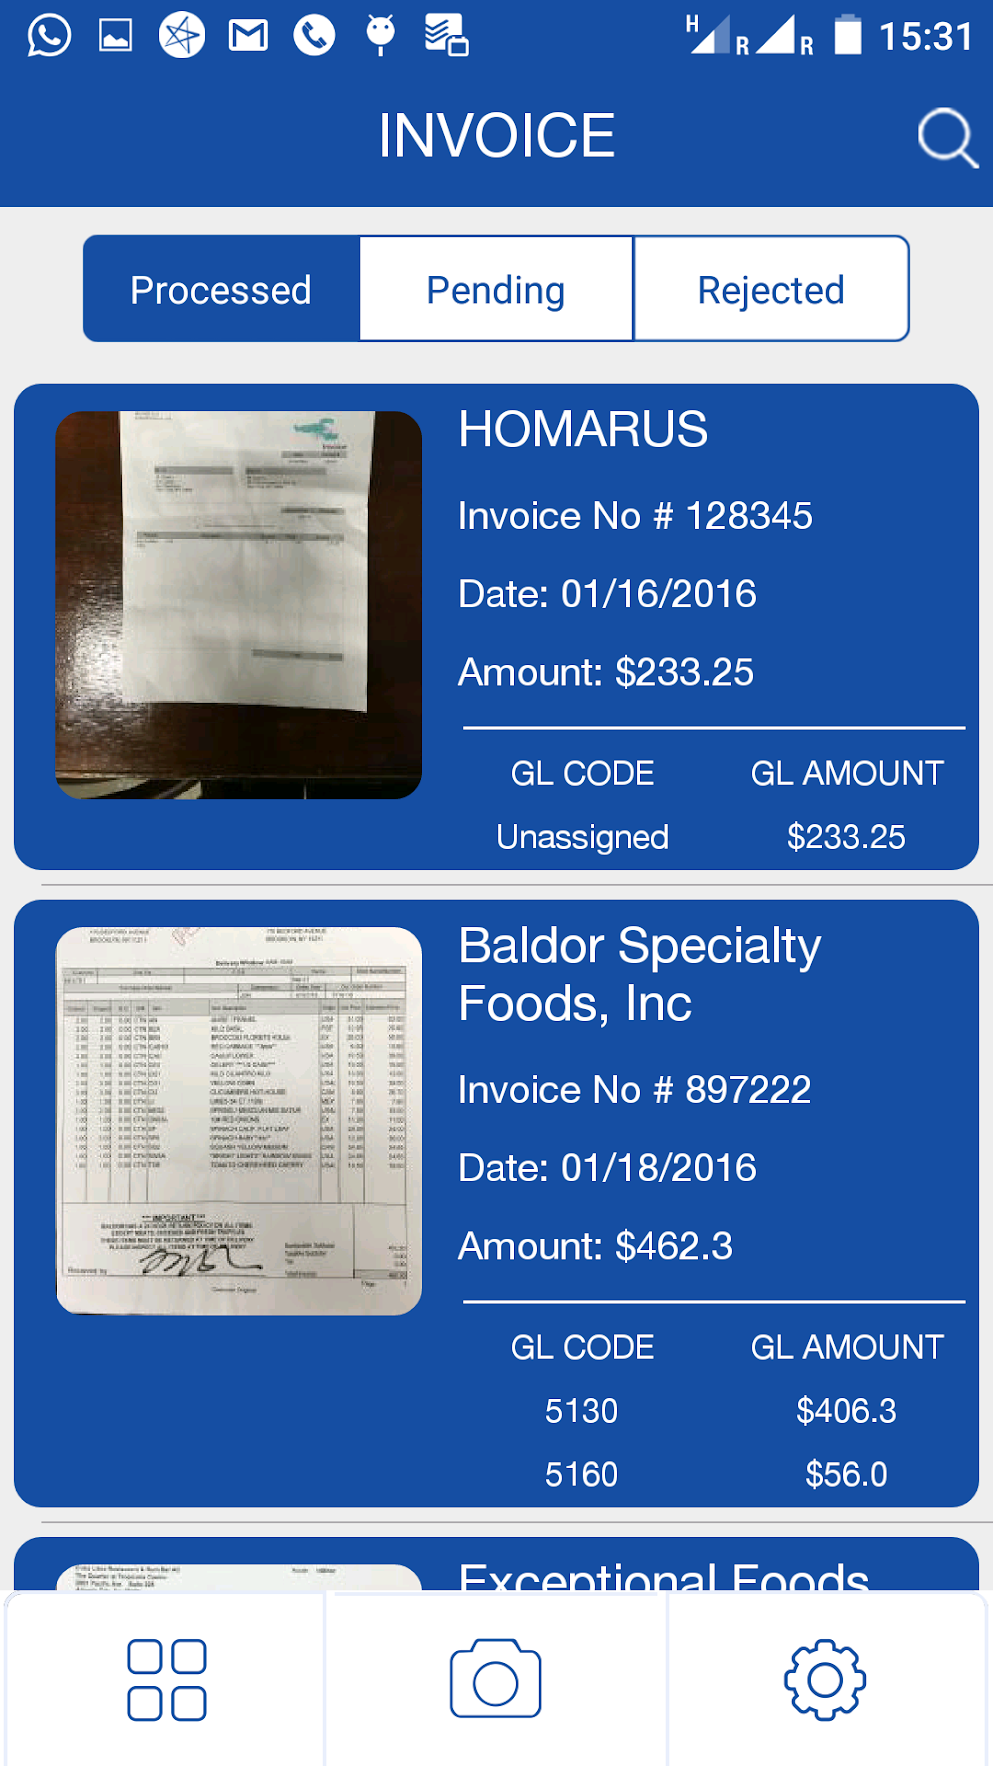 Invoices are processed, stored, and archived within the system